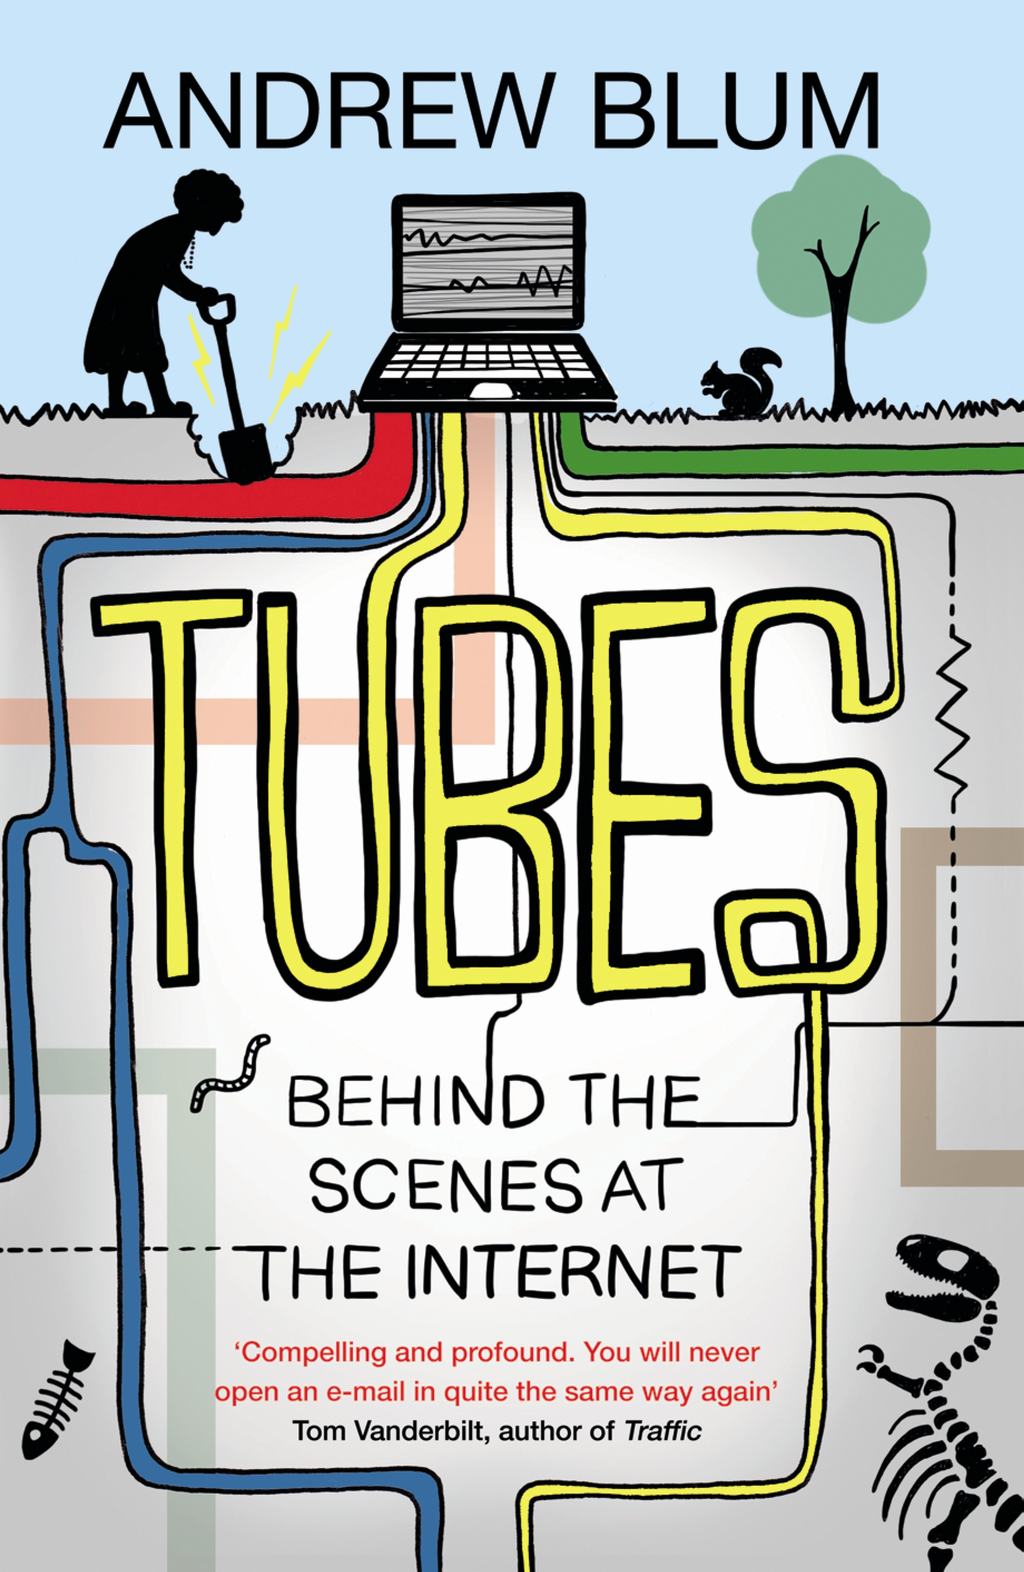 Tubes Behind the Scenes at the Internet